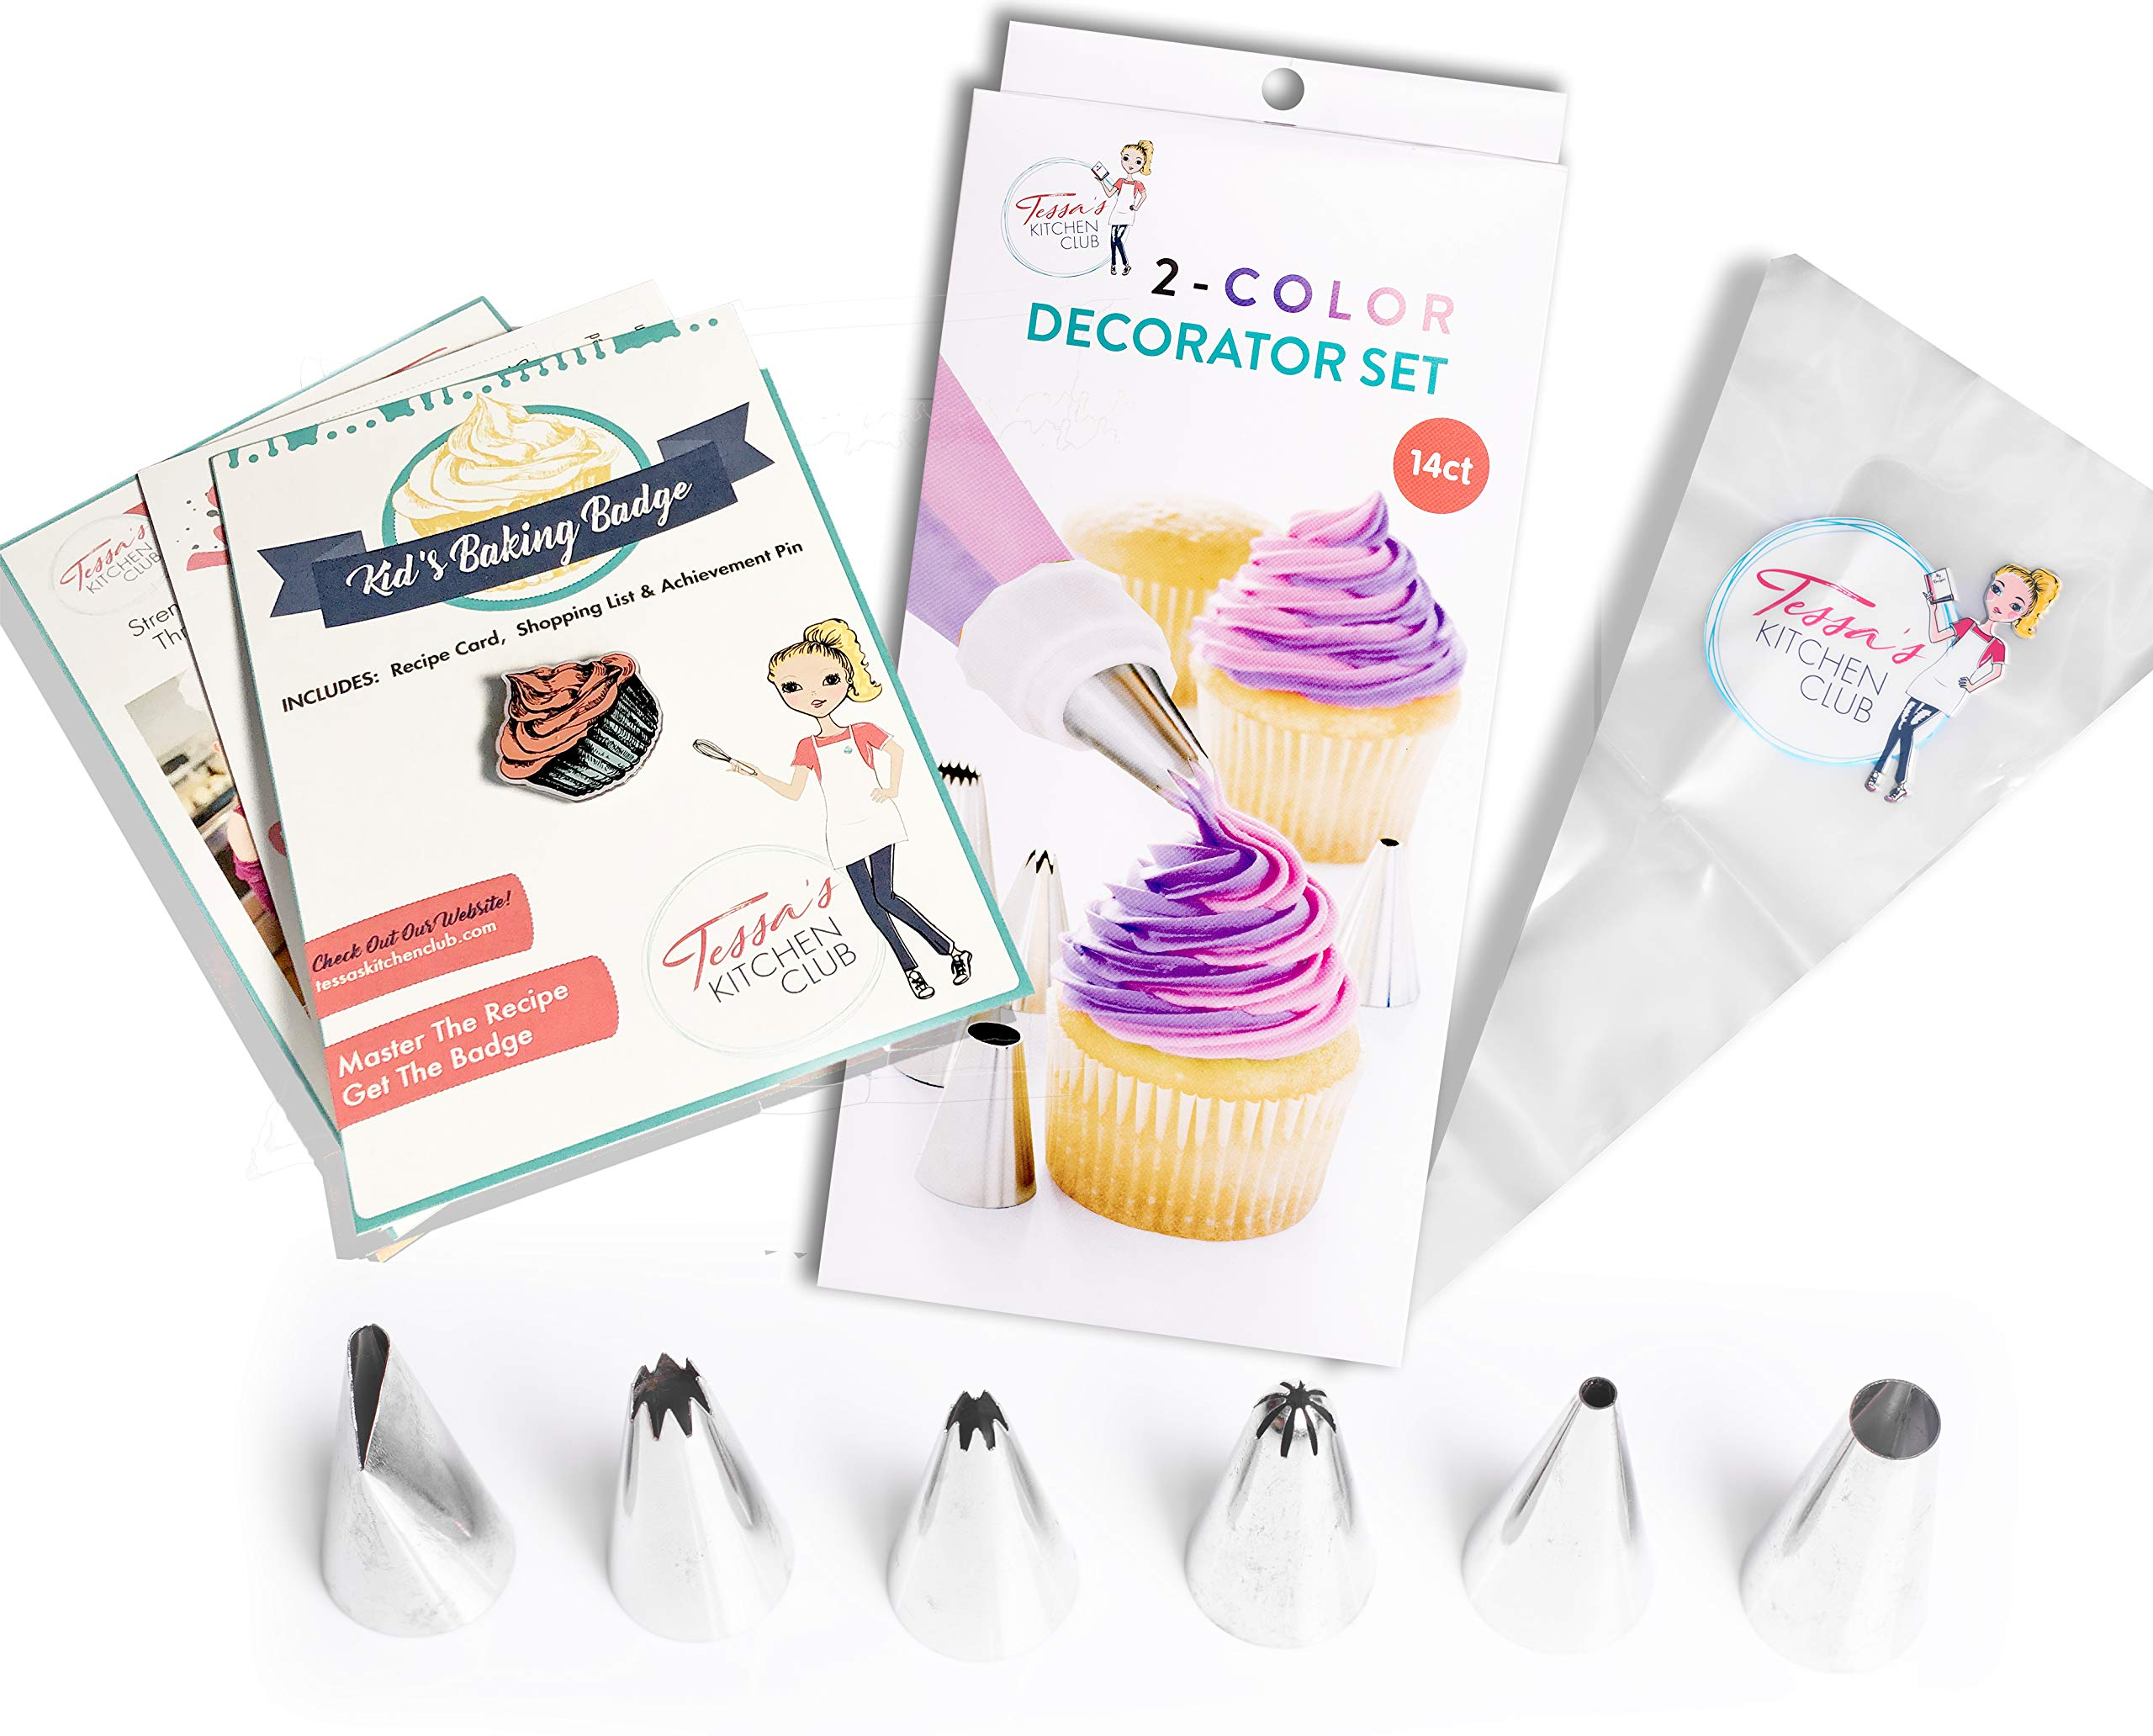 Tessa's Kitchen Club Kids Chef Baking Kits, Achievement Pin with Professional Chef Hat Apron and Accessories (Piping Set) by Tessa's Kitchen Club